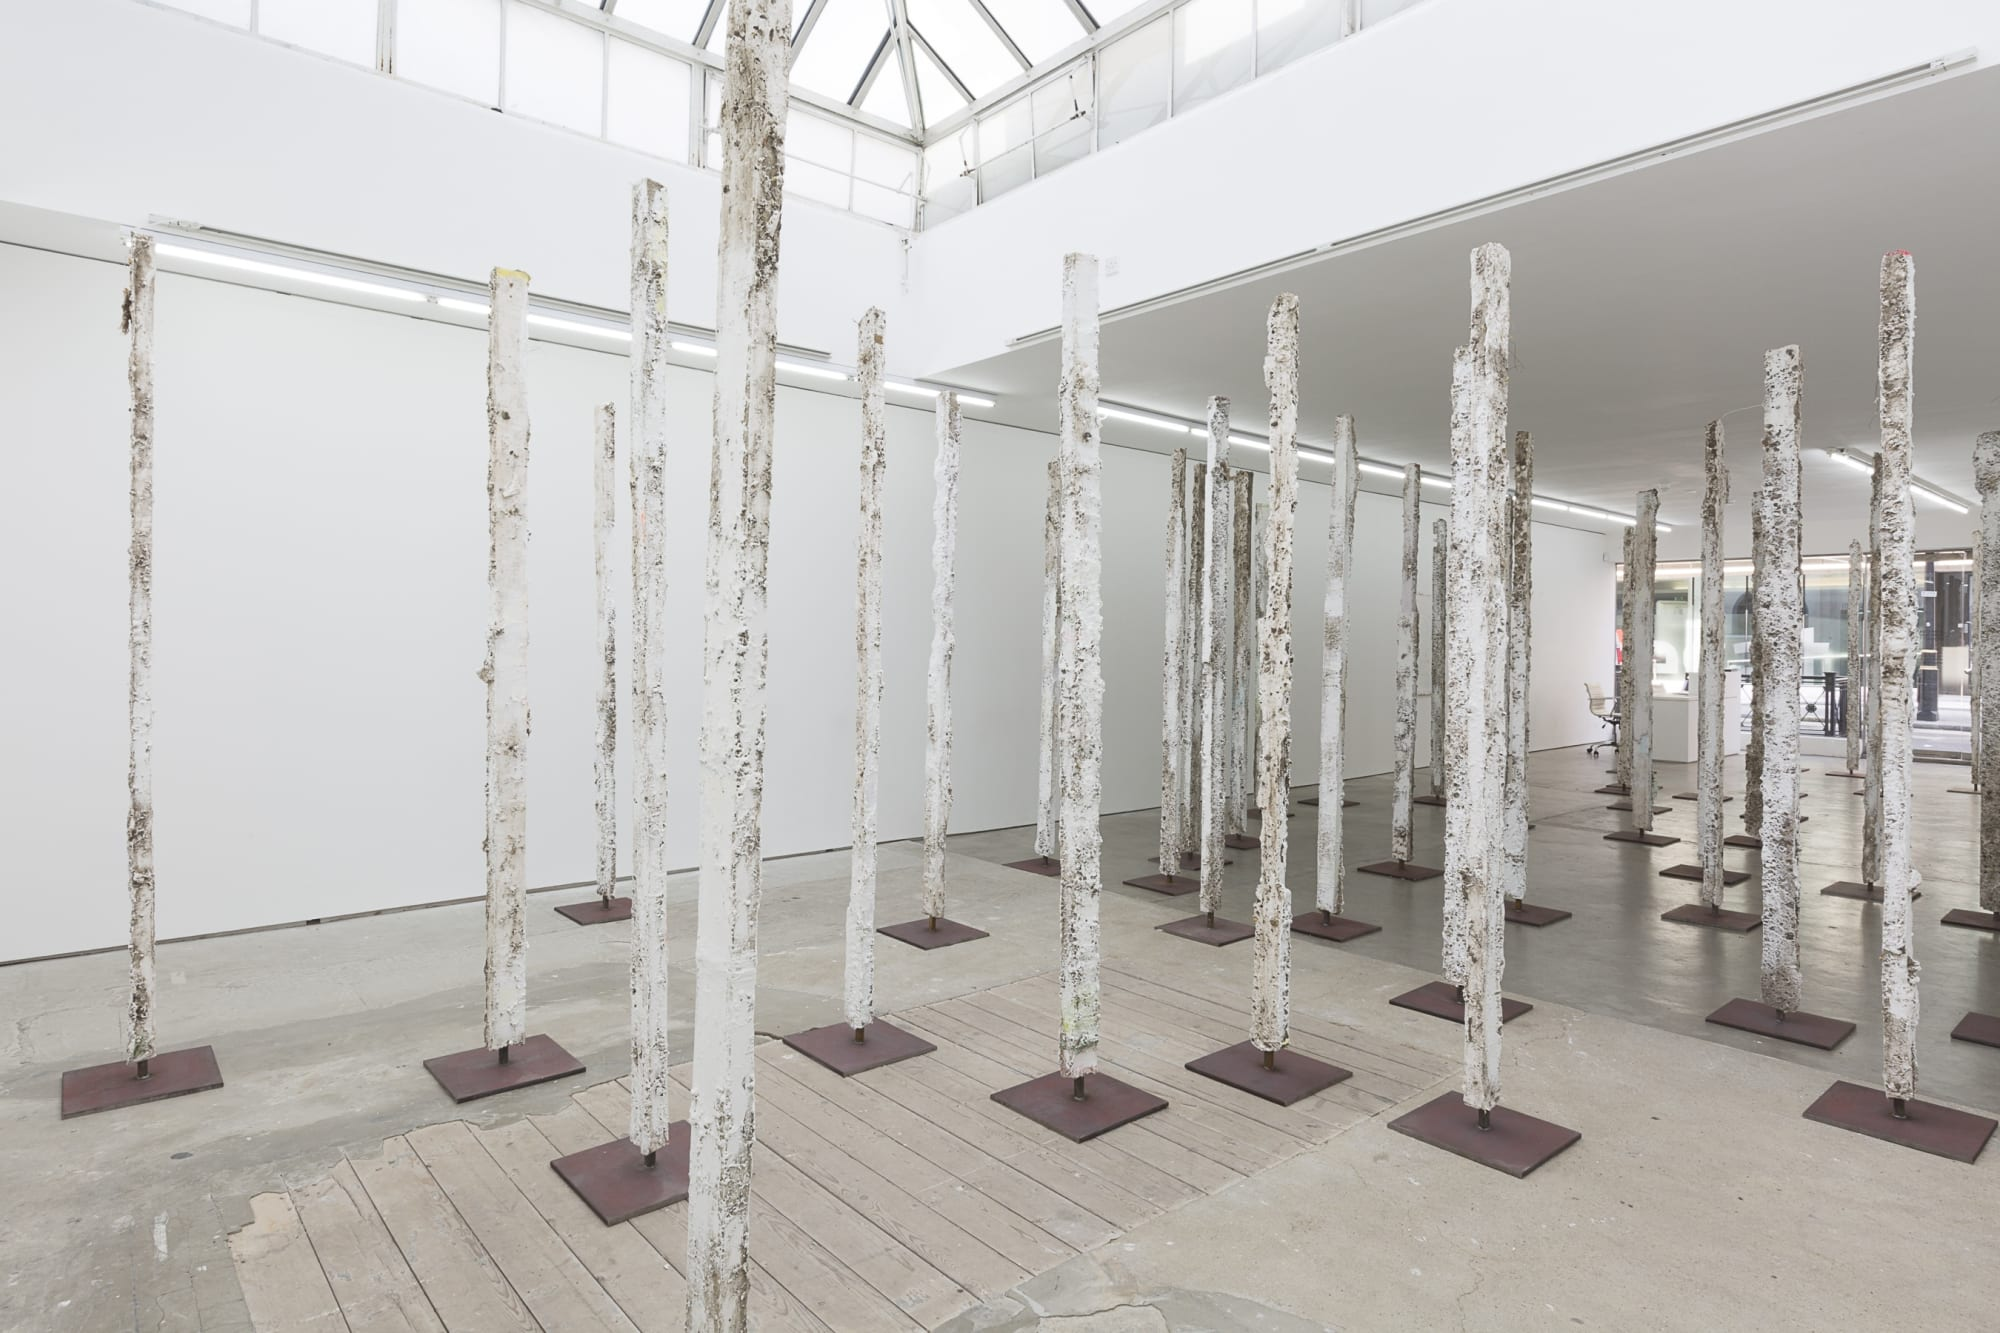 Jodie Carey: Earthcasts, Installation View, 2017. Edel Assanti.